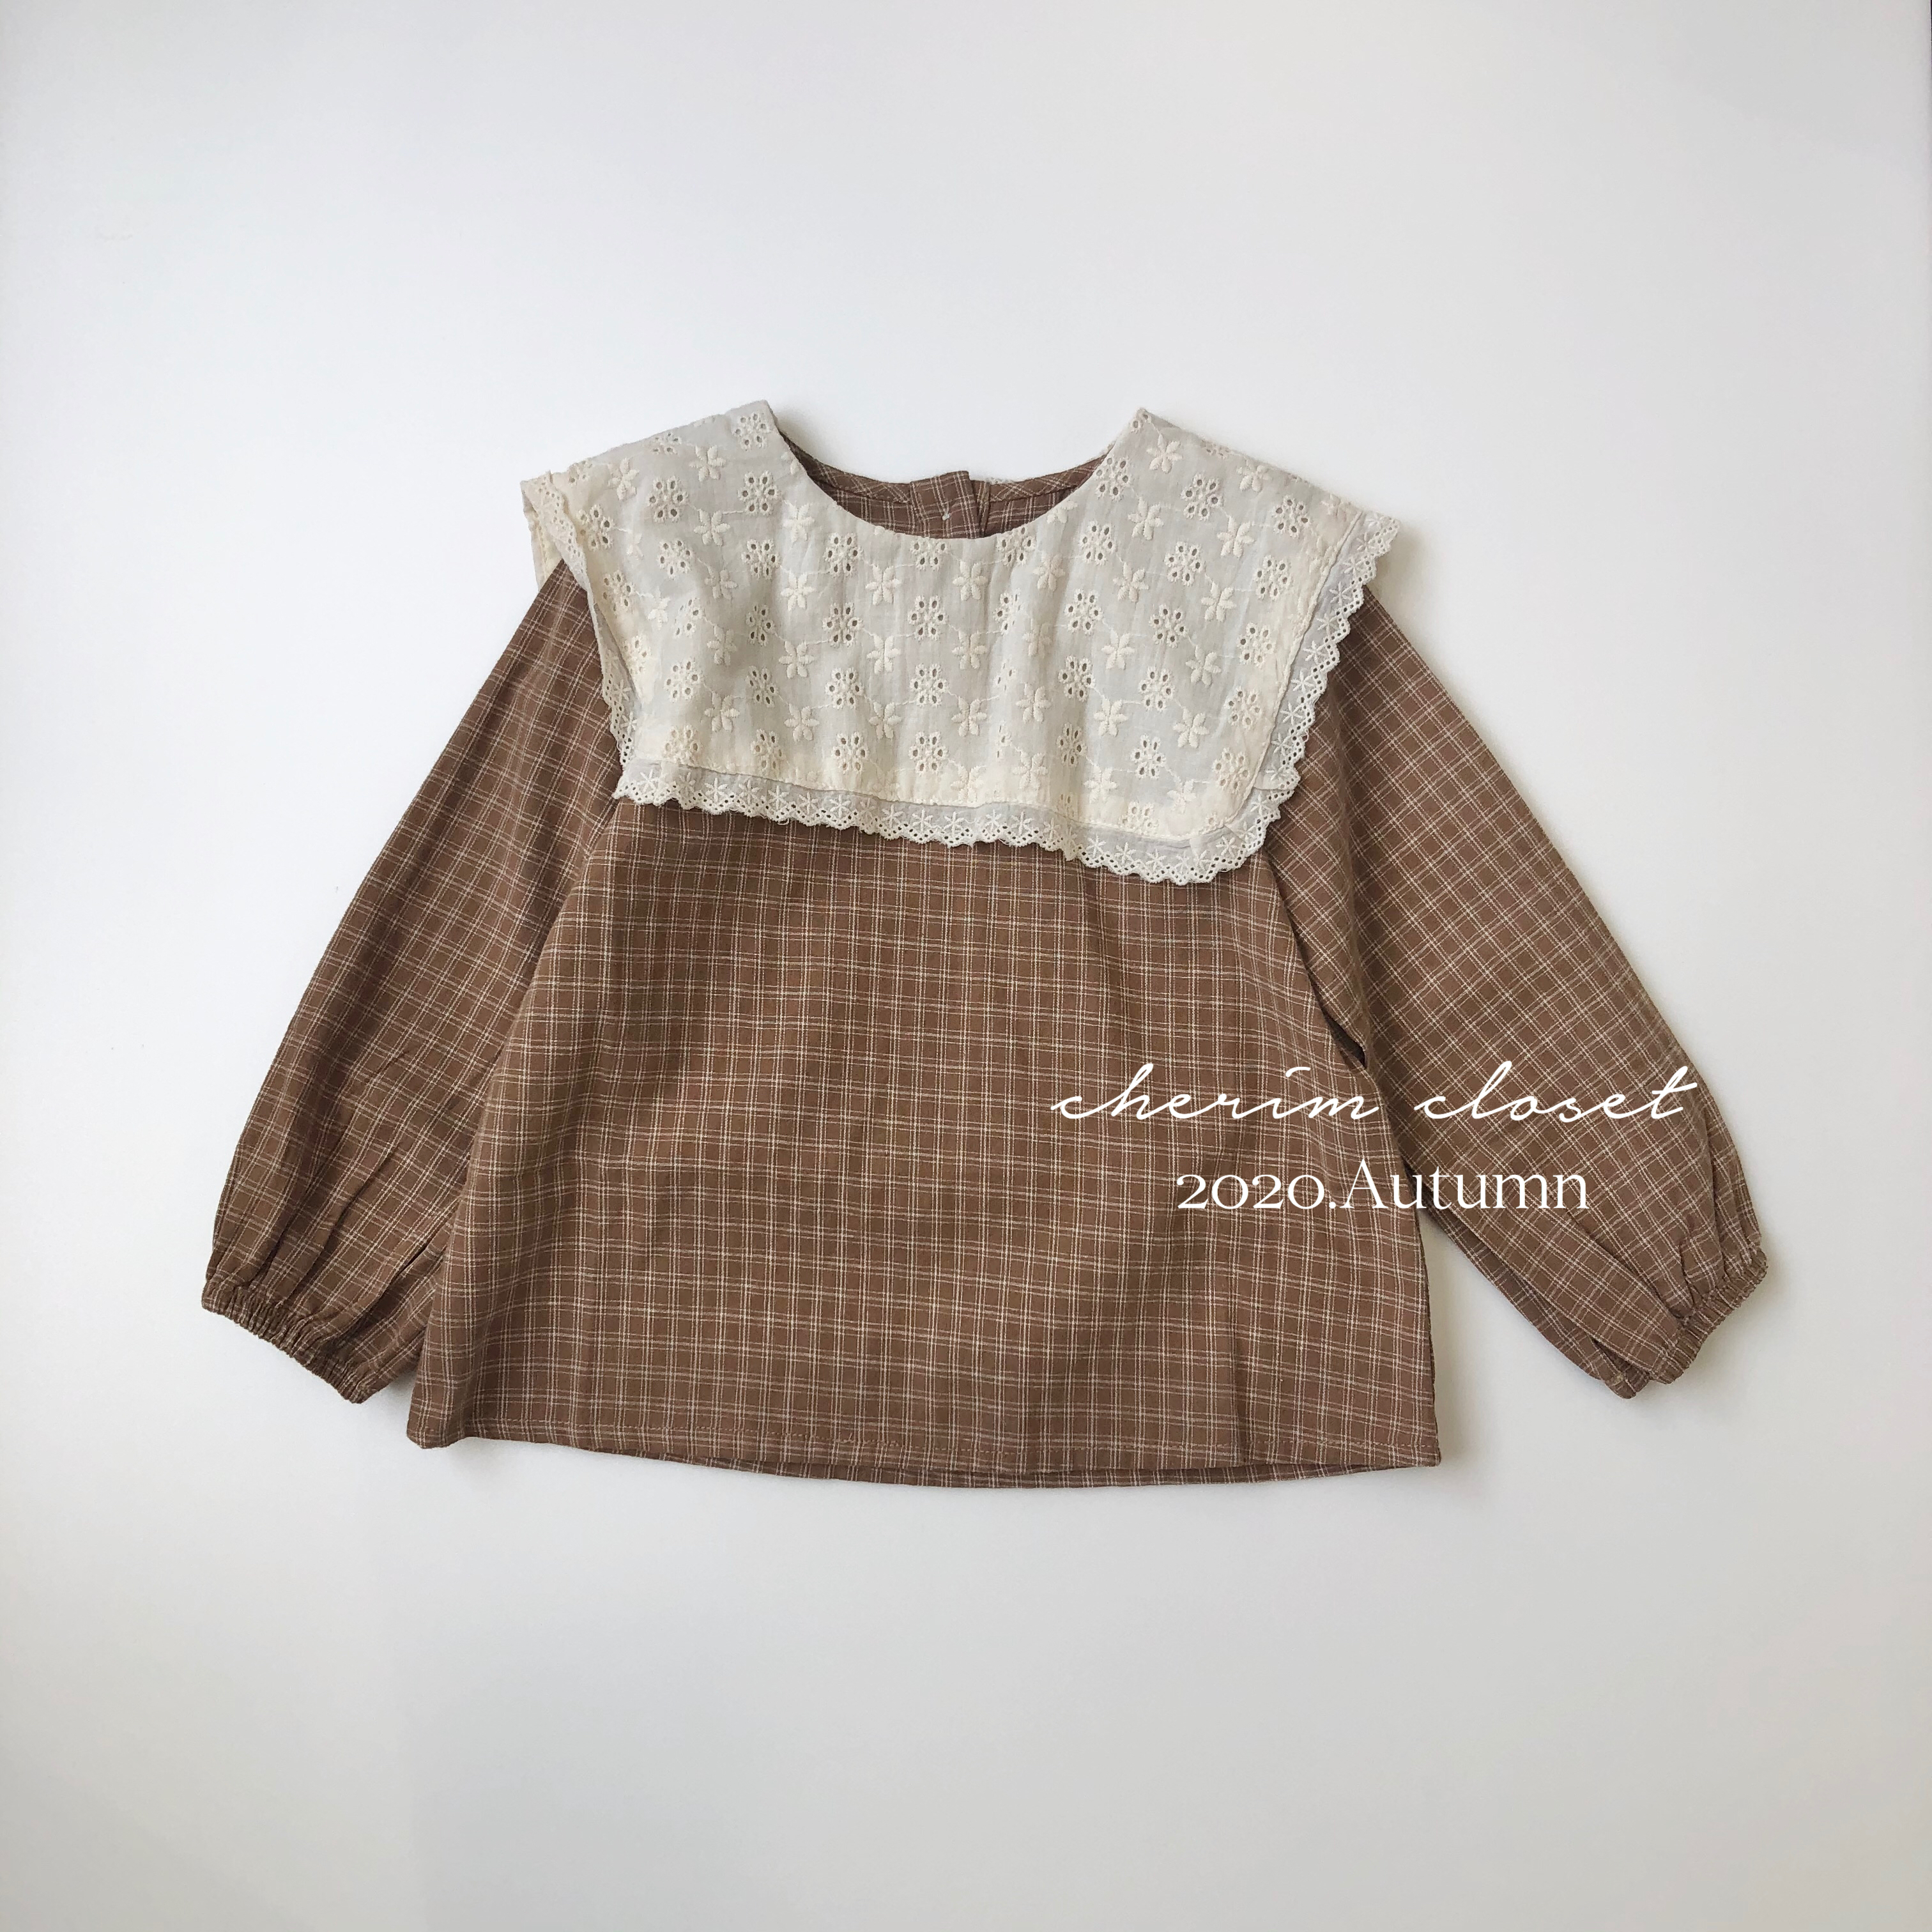 NO.841 jyuna blouse